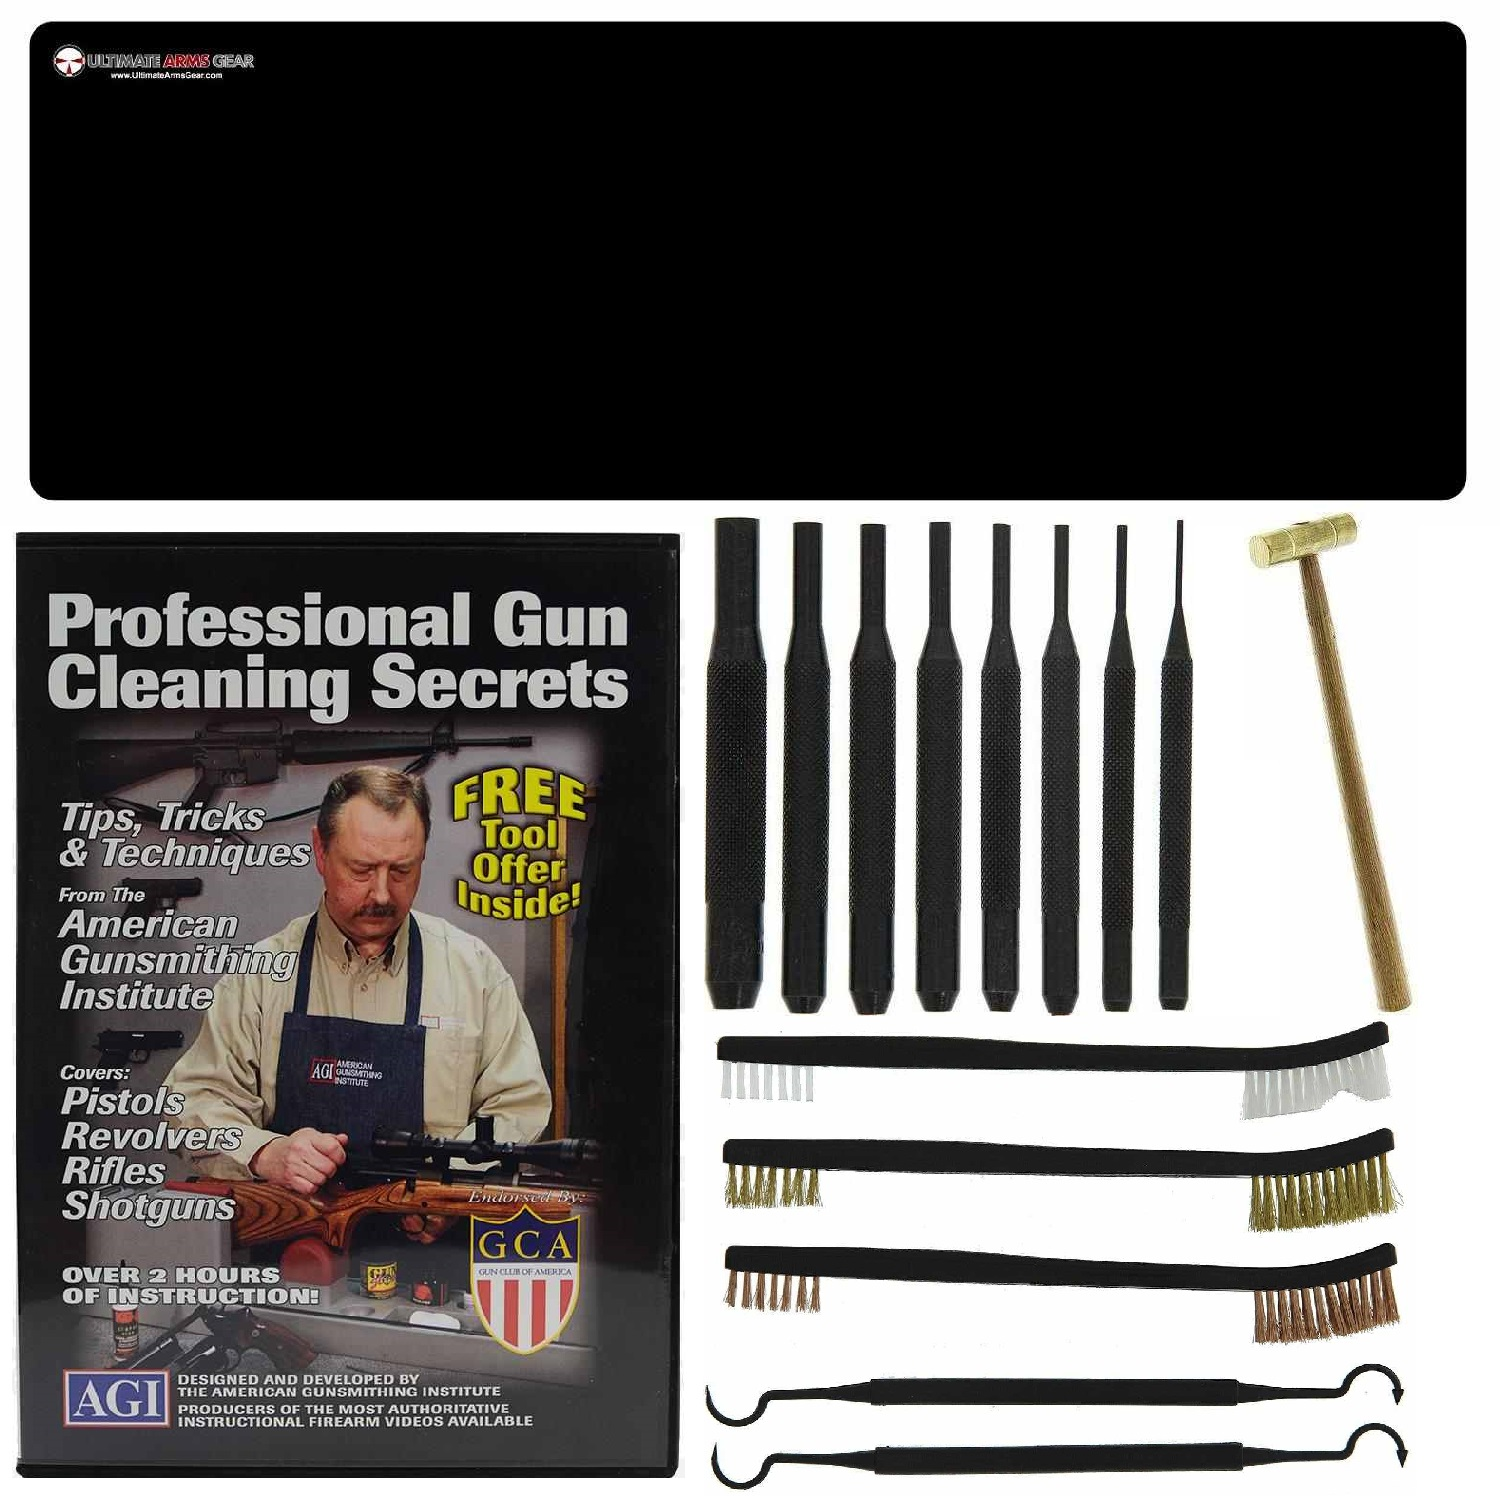 AGI DVD Pro Gun Cleaning Course Weatherby Mark V Tar-Hunt RSG-12 Bolt Action Rifle + Ultimate Arms Gear Gunsmith &... by